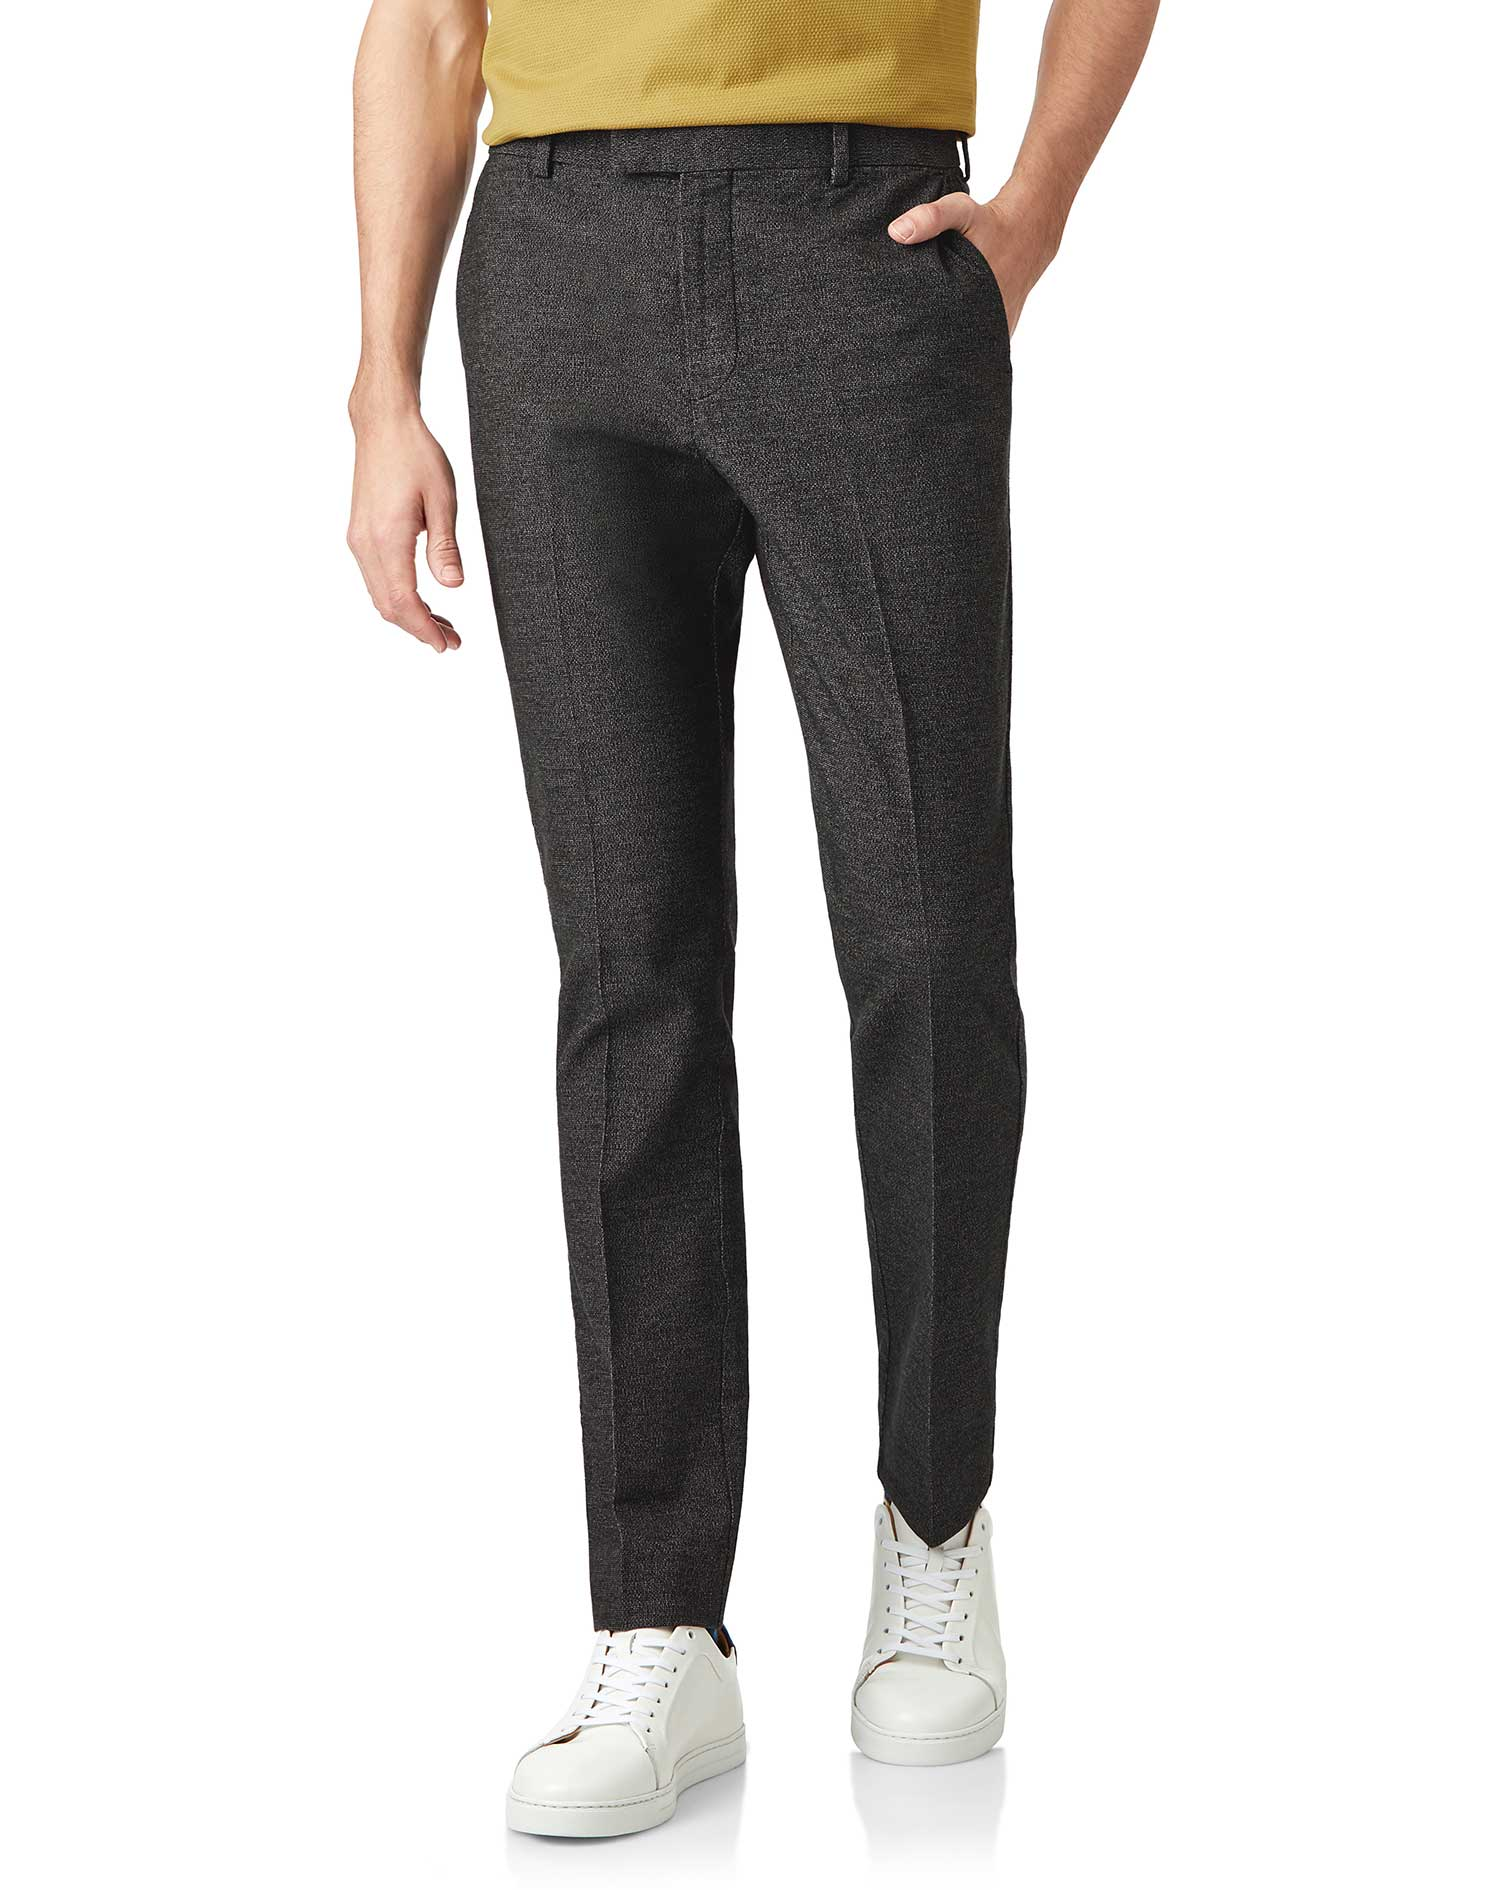 Charcoal Non-Iron Cotton Stretch Texture Tailored Trousers